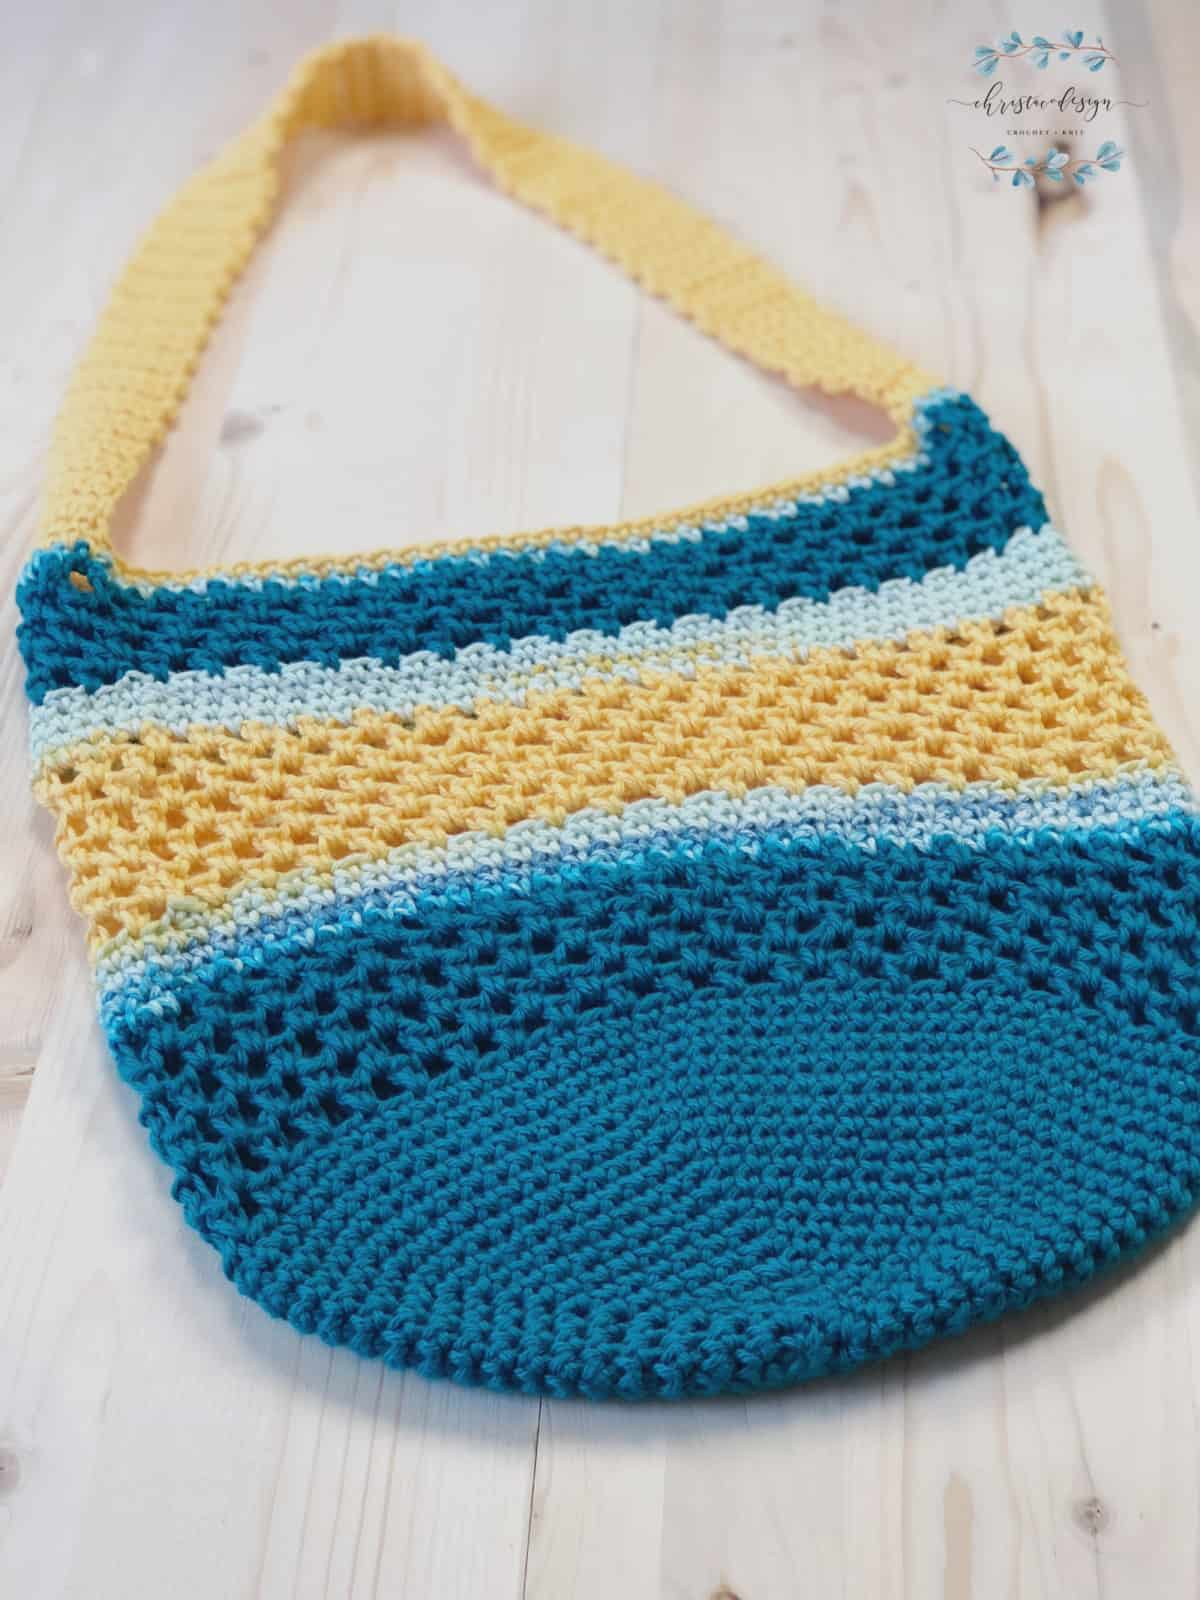 picture of teal and yellow coastal sun beach tote bag crochet pattern